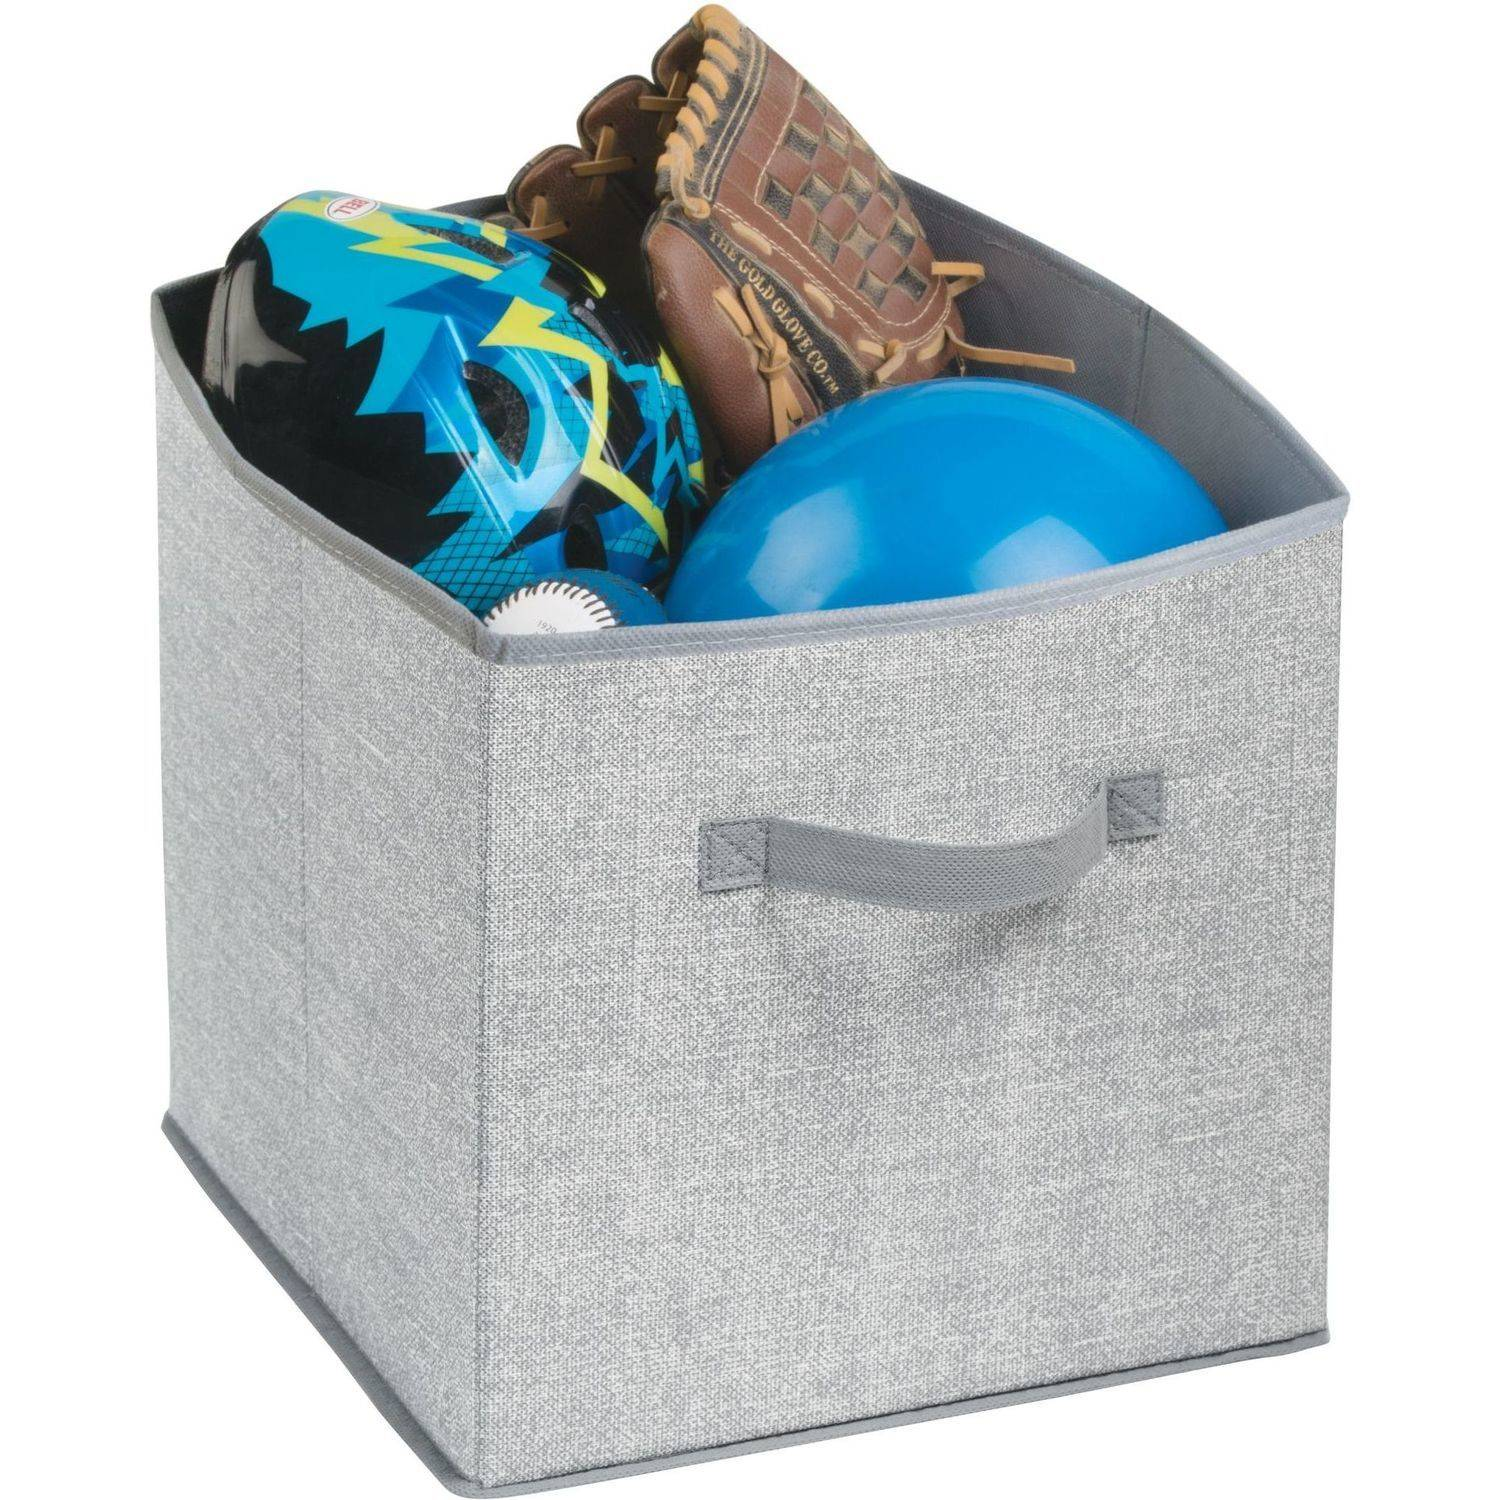 InterDesign Aldo Fabric Storage Cube, Grey